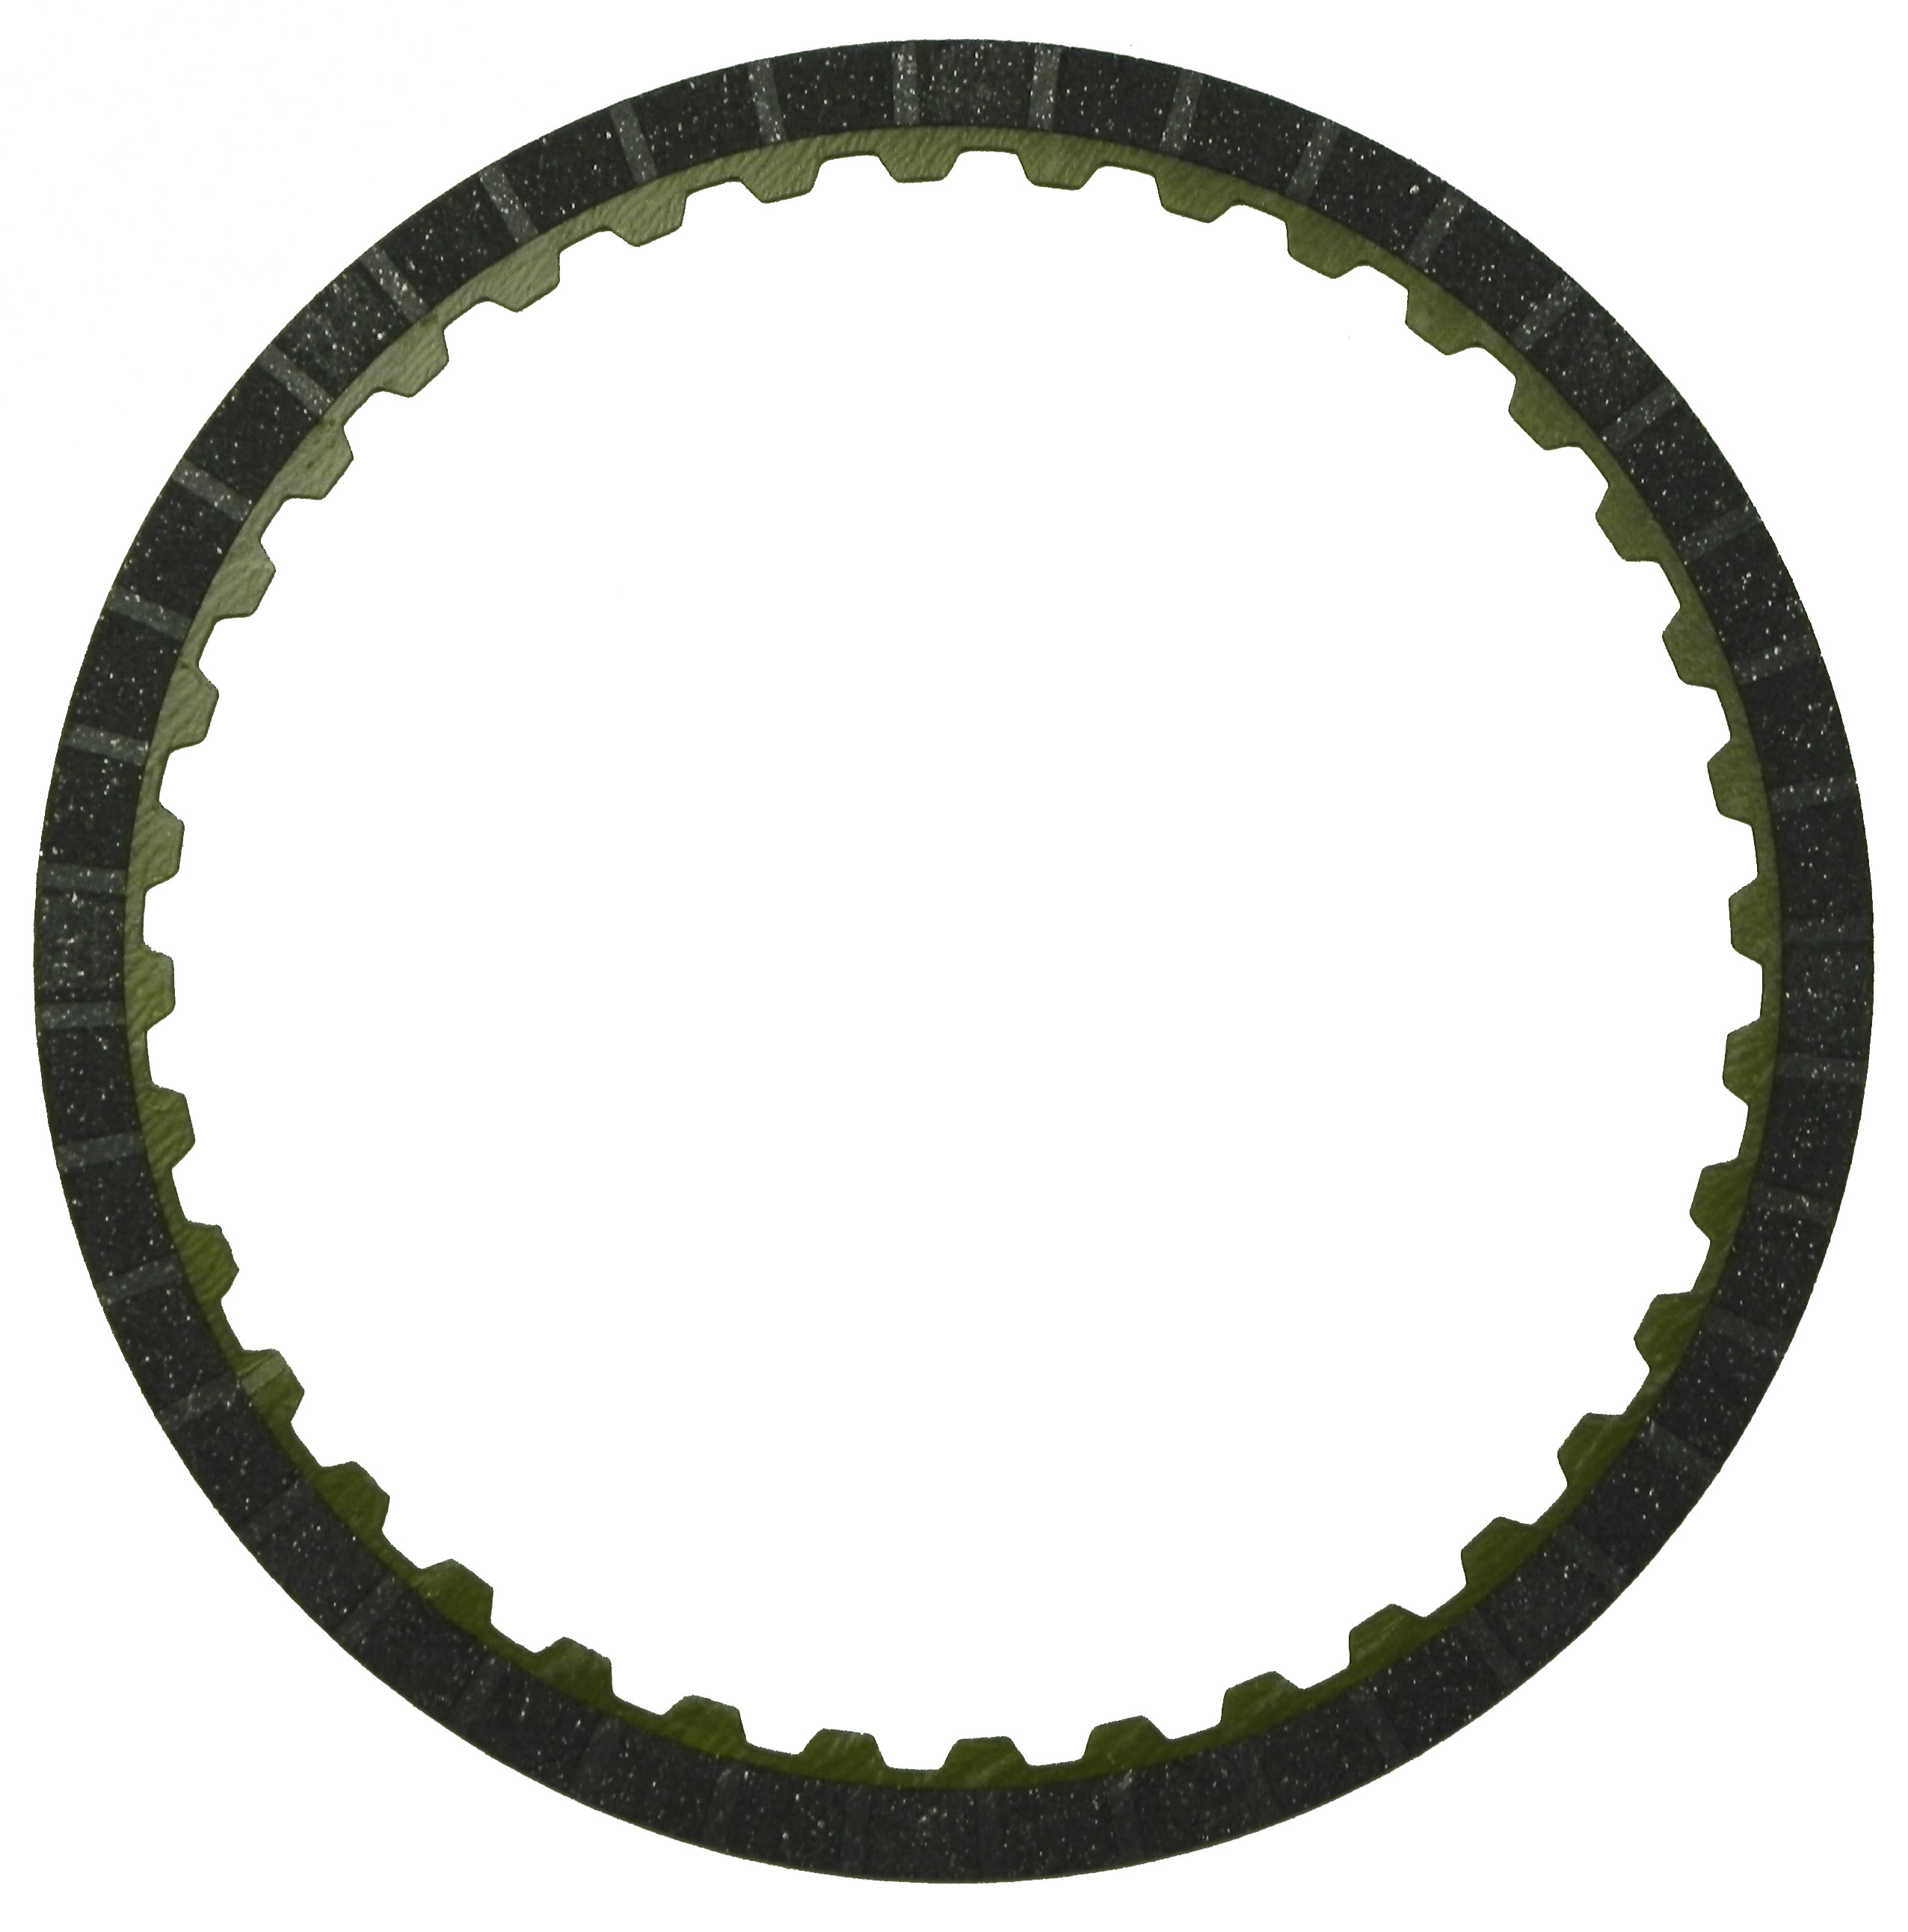 R560475 | 2007-ON Friction Clutch Plate High Energy C1 (1-2-3-4), Forward High Energy